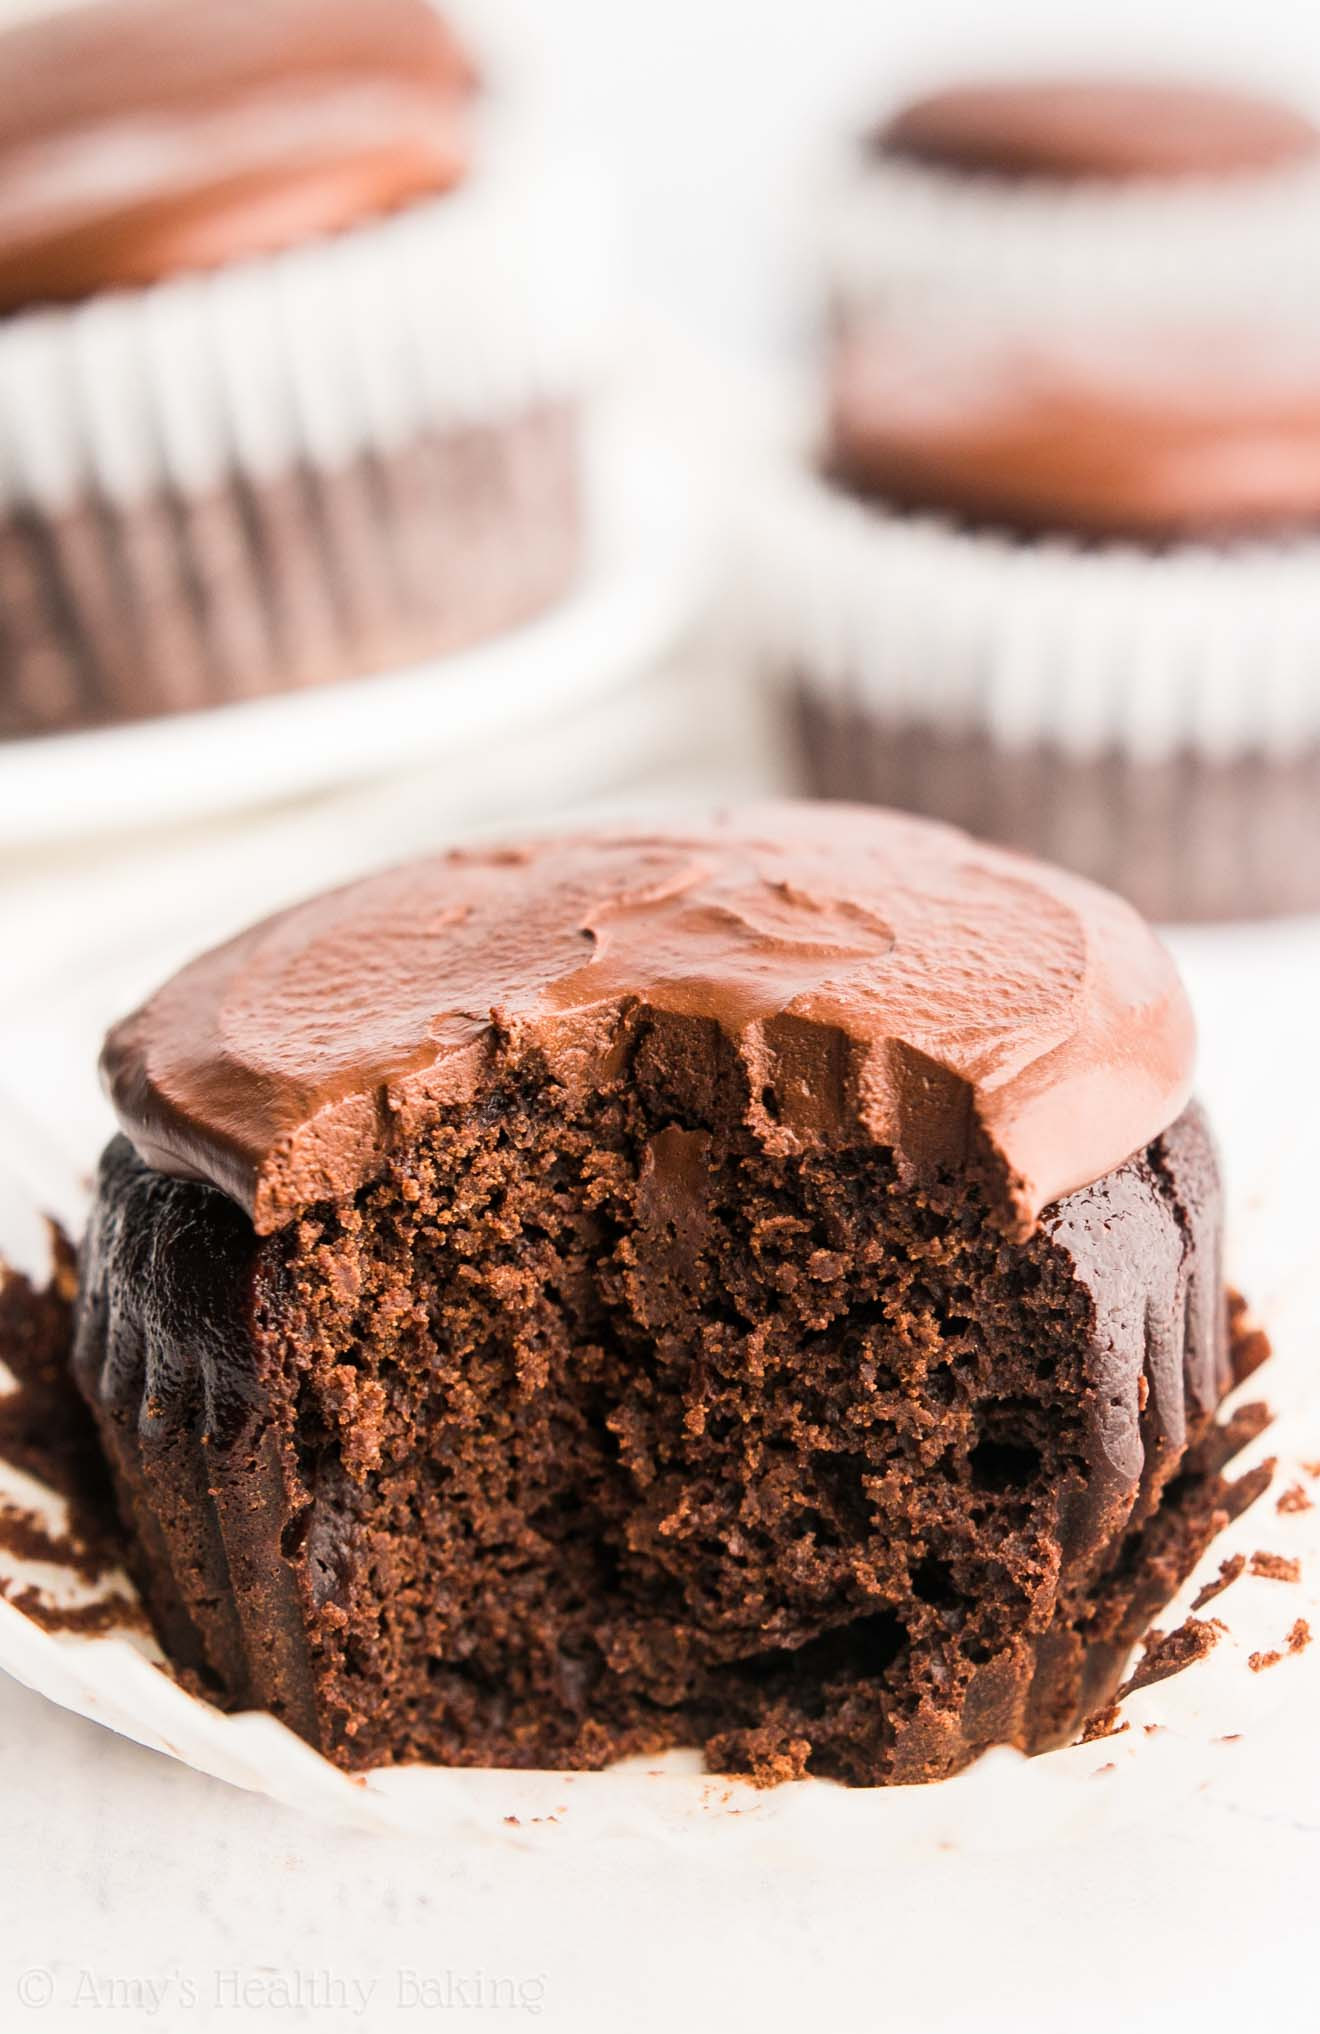 Healthy Chocolate Cupcakes  The Ultimate Healthy Dark Chocolate Cupcakes VIDEO